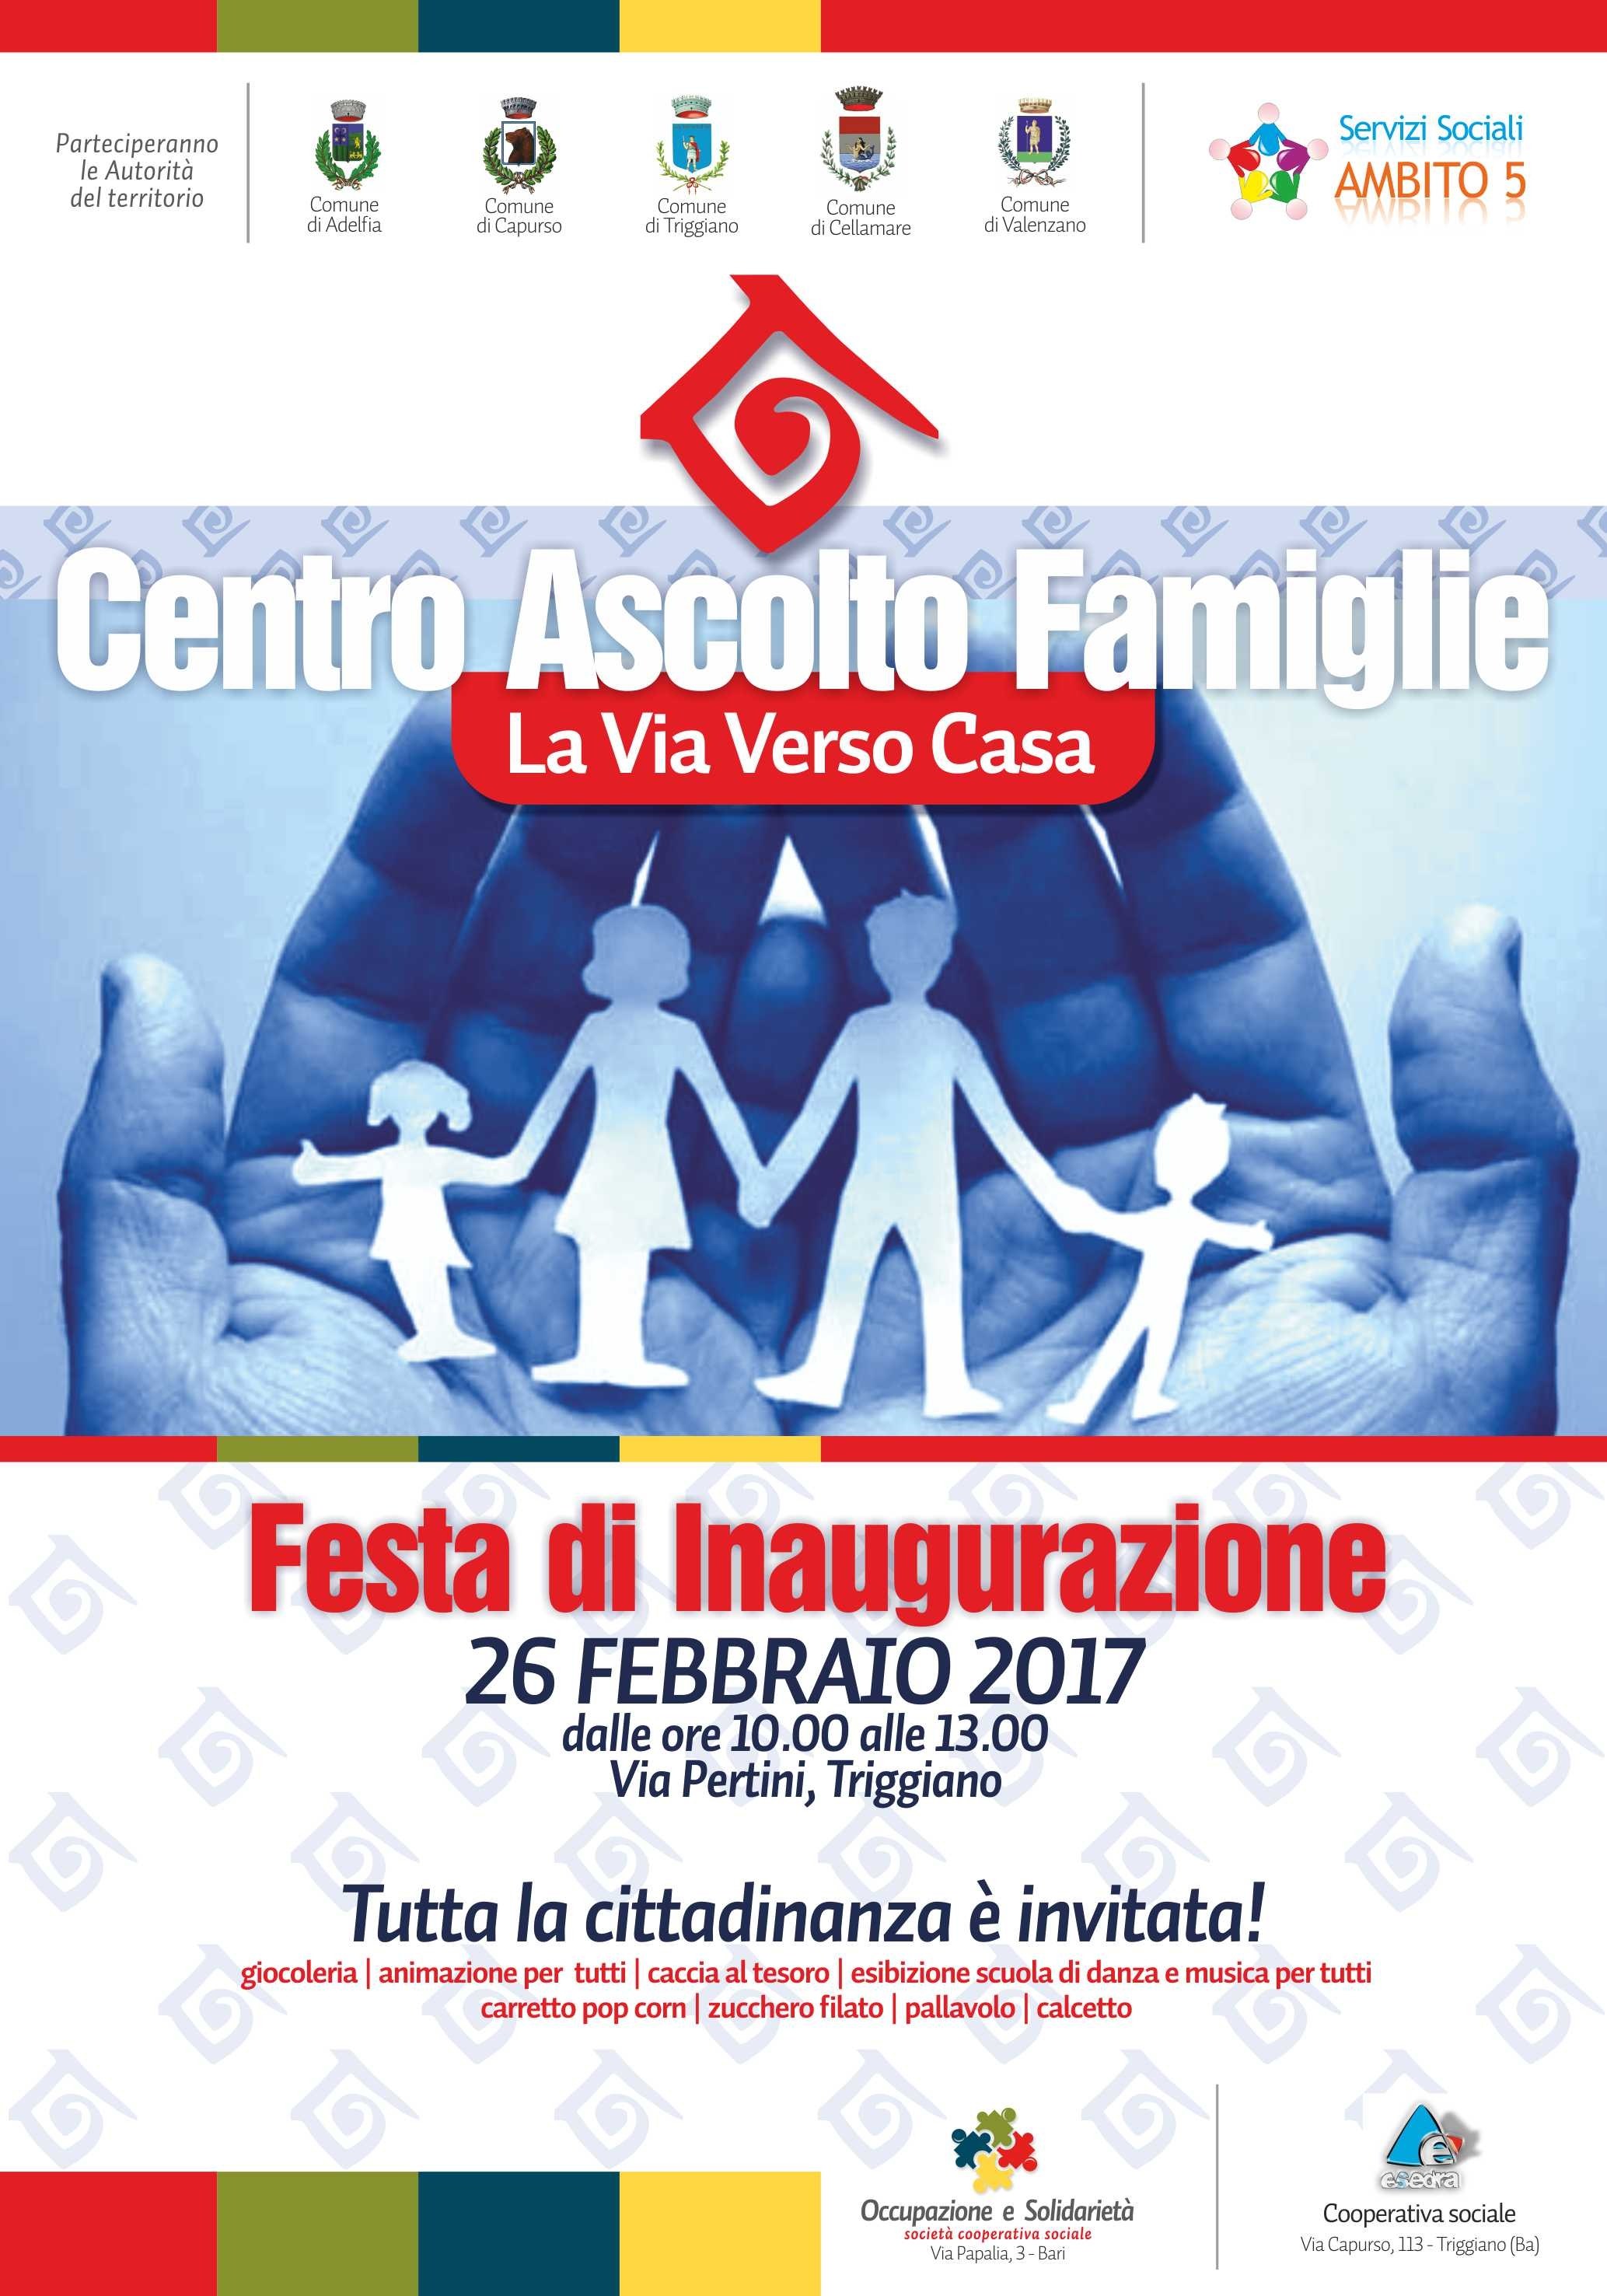 http://www.ambitosociale5.it/attachments/article/250/MANIFESTO%20inaugurazione%20%20CENTRO%20ASCOLTO%20FAMIGLIE.JPG